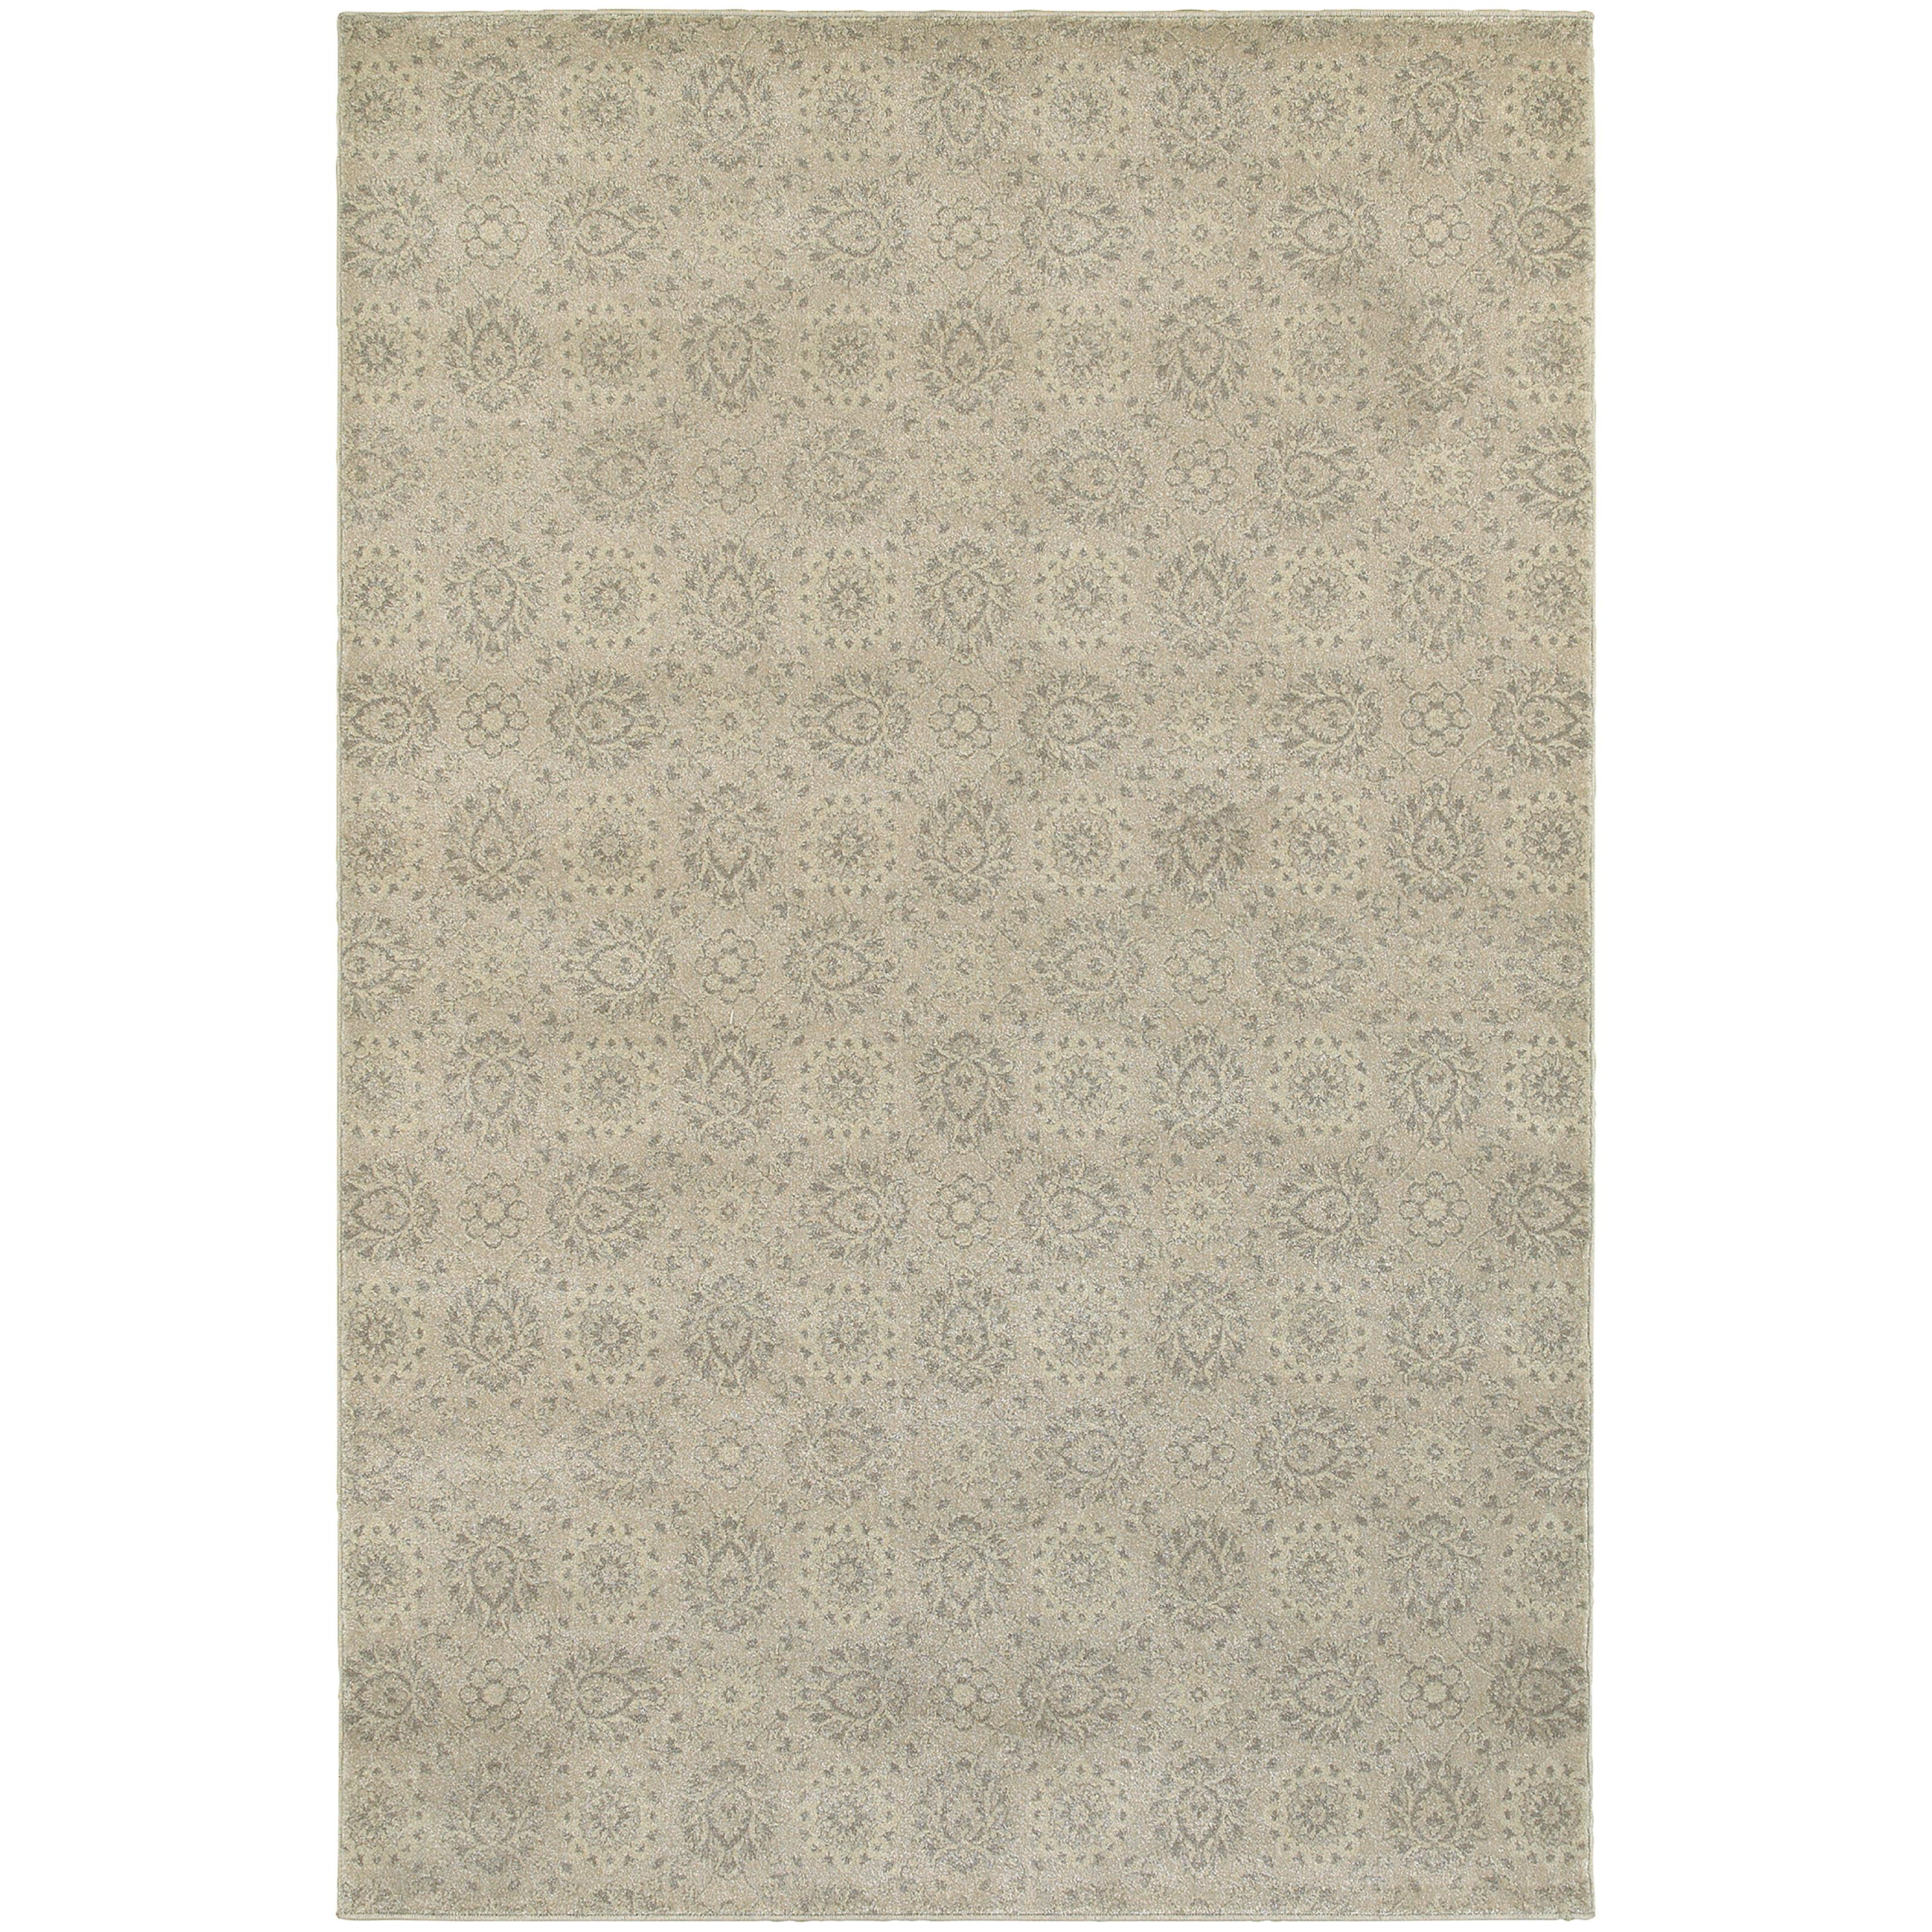 """Richmond 7'10"""" X 10'10"""" Rug by Oriental Weavers at Esprit Decor Home Furnishings"""